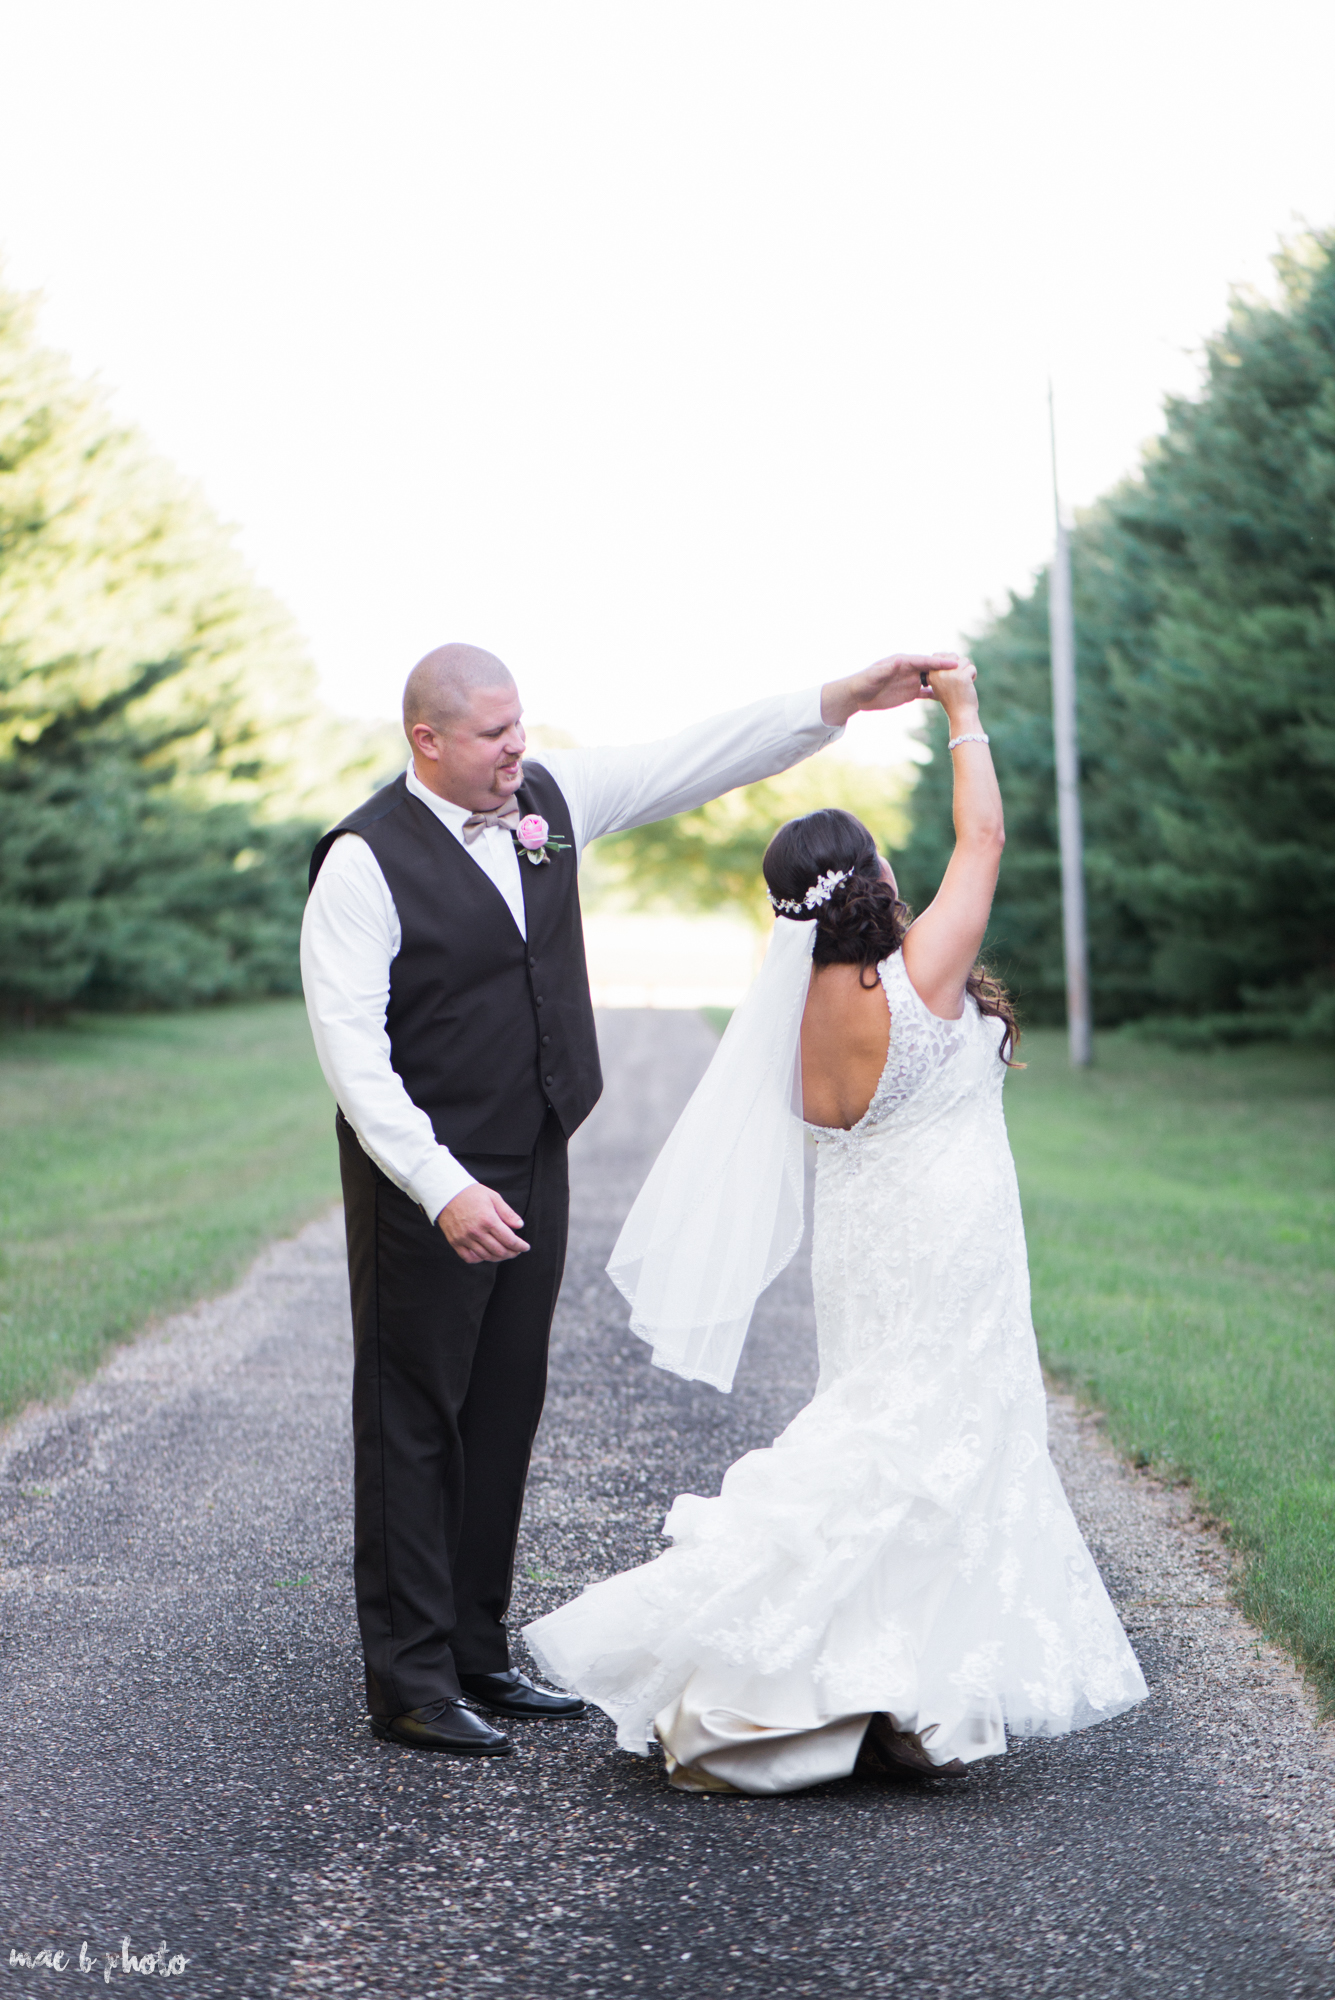 Gabby & Shane's Rustic Intimate Summer Barn Wedding at The Barn in Salem, Ohio Photographed by Mae B Photo-2.jpg